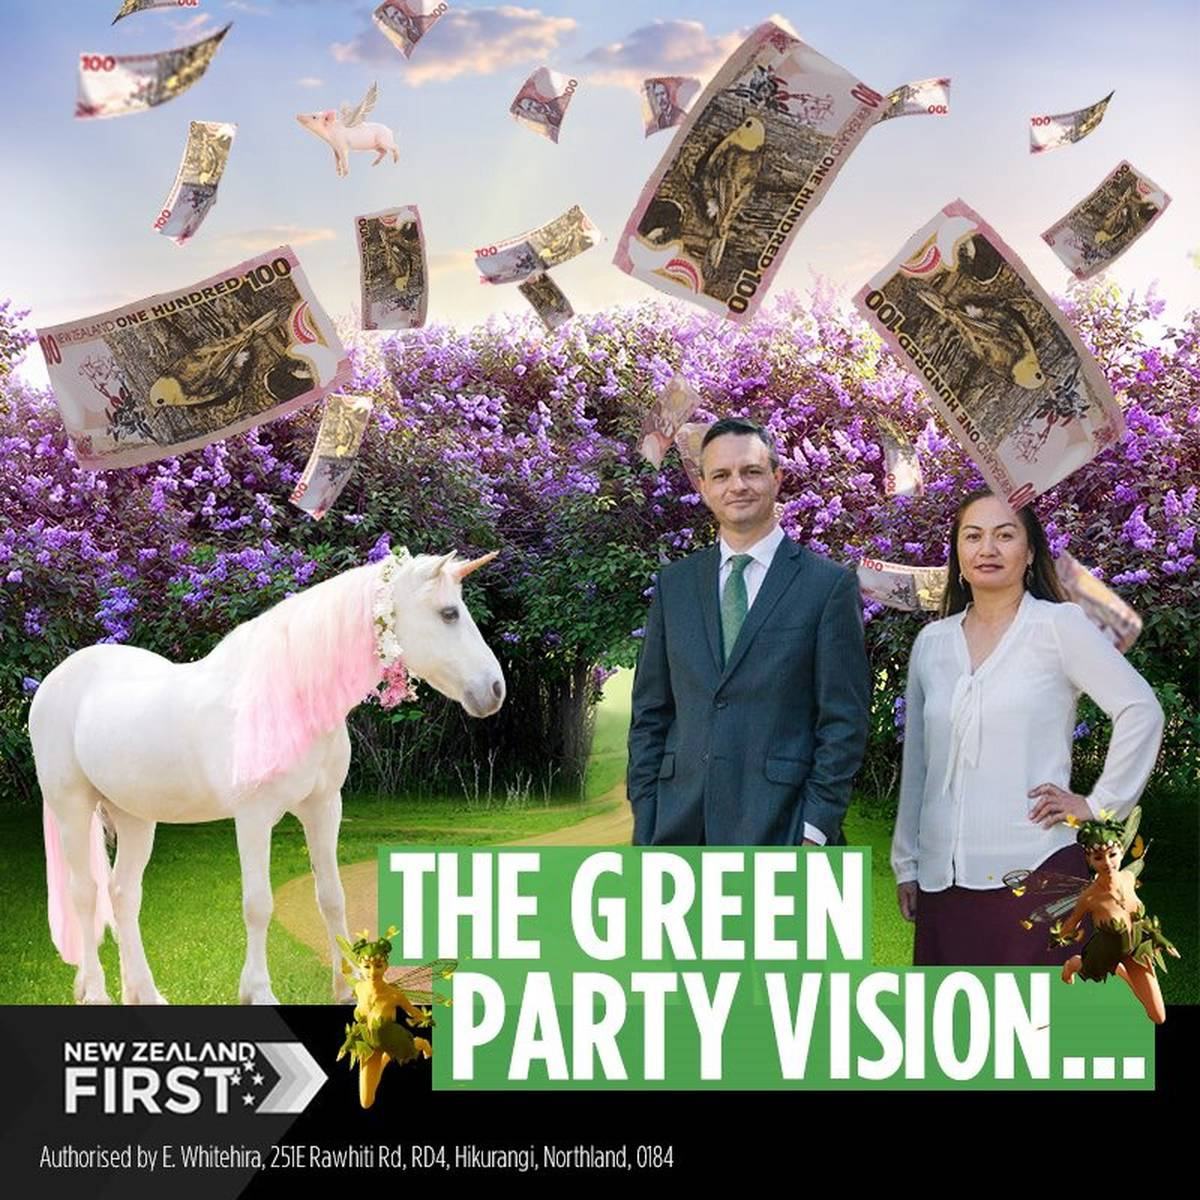 Election 2020: NZ First doubles down on attacks against Greens with mocking unicorns, pixies post